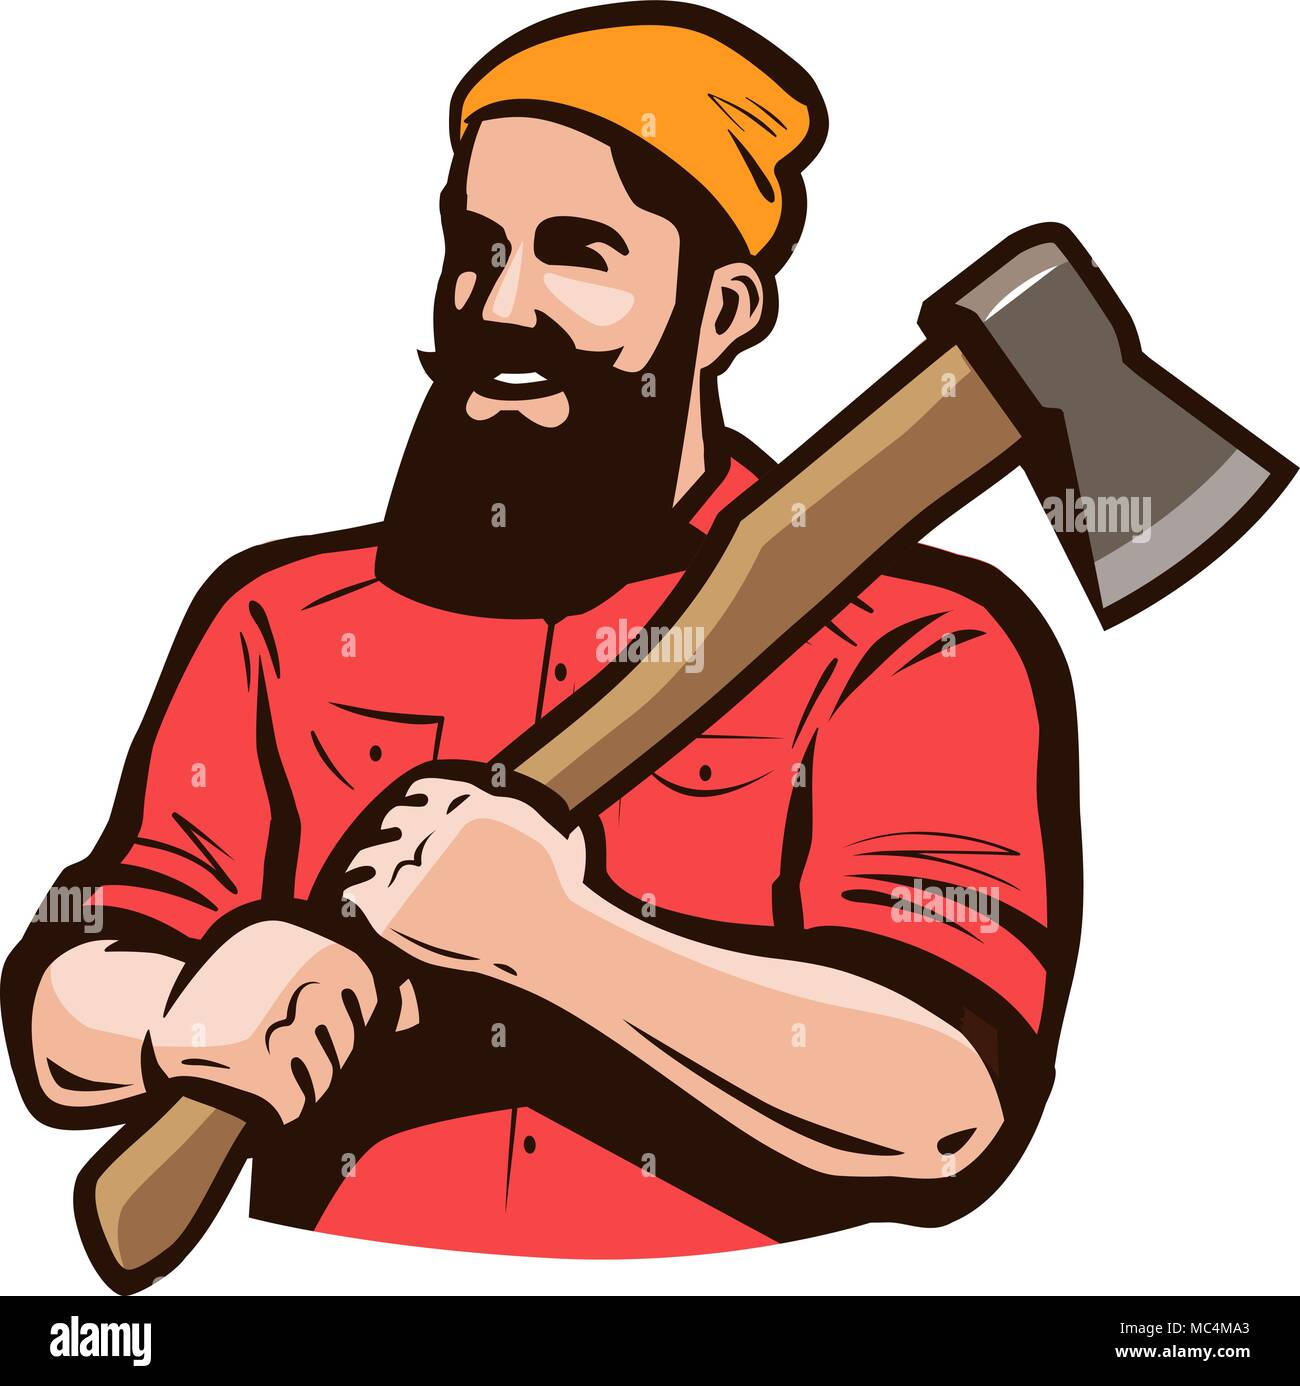 Lumberjack, axeman with axe in hands. Carpentry, woodworker, sawmill concept. Cartoon vector illustration - Stock Image